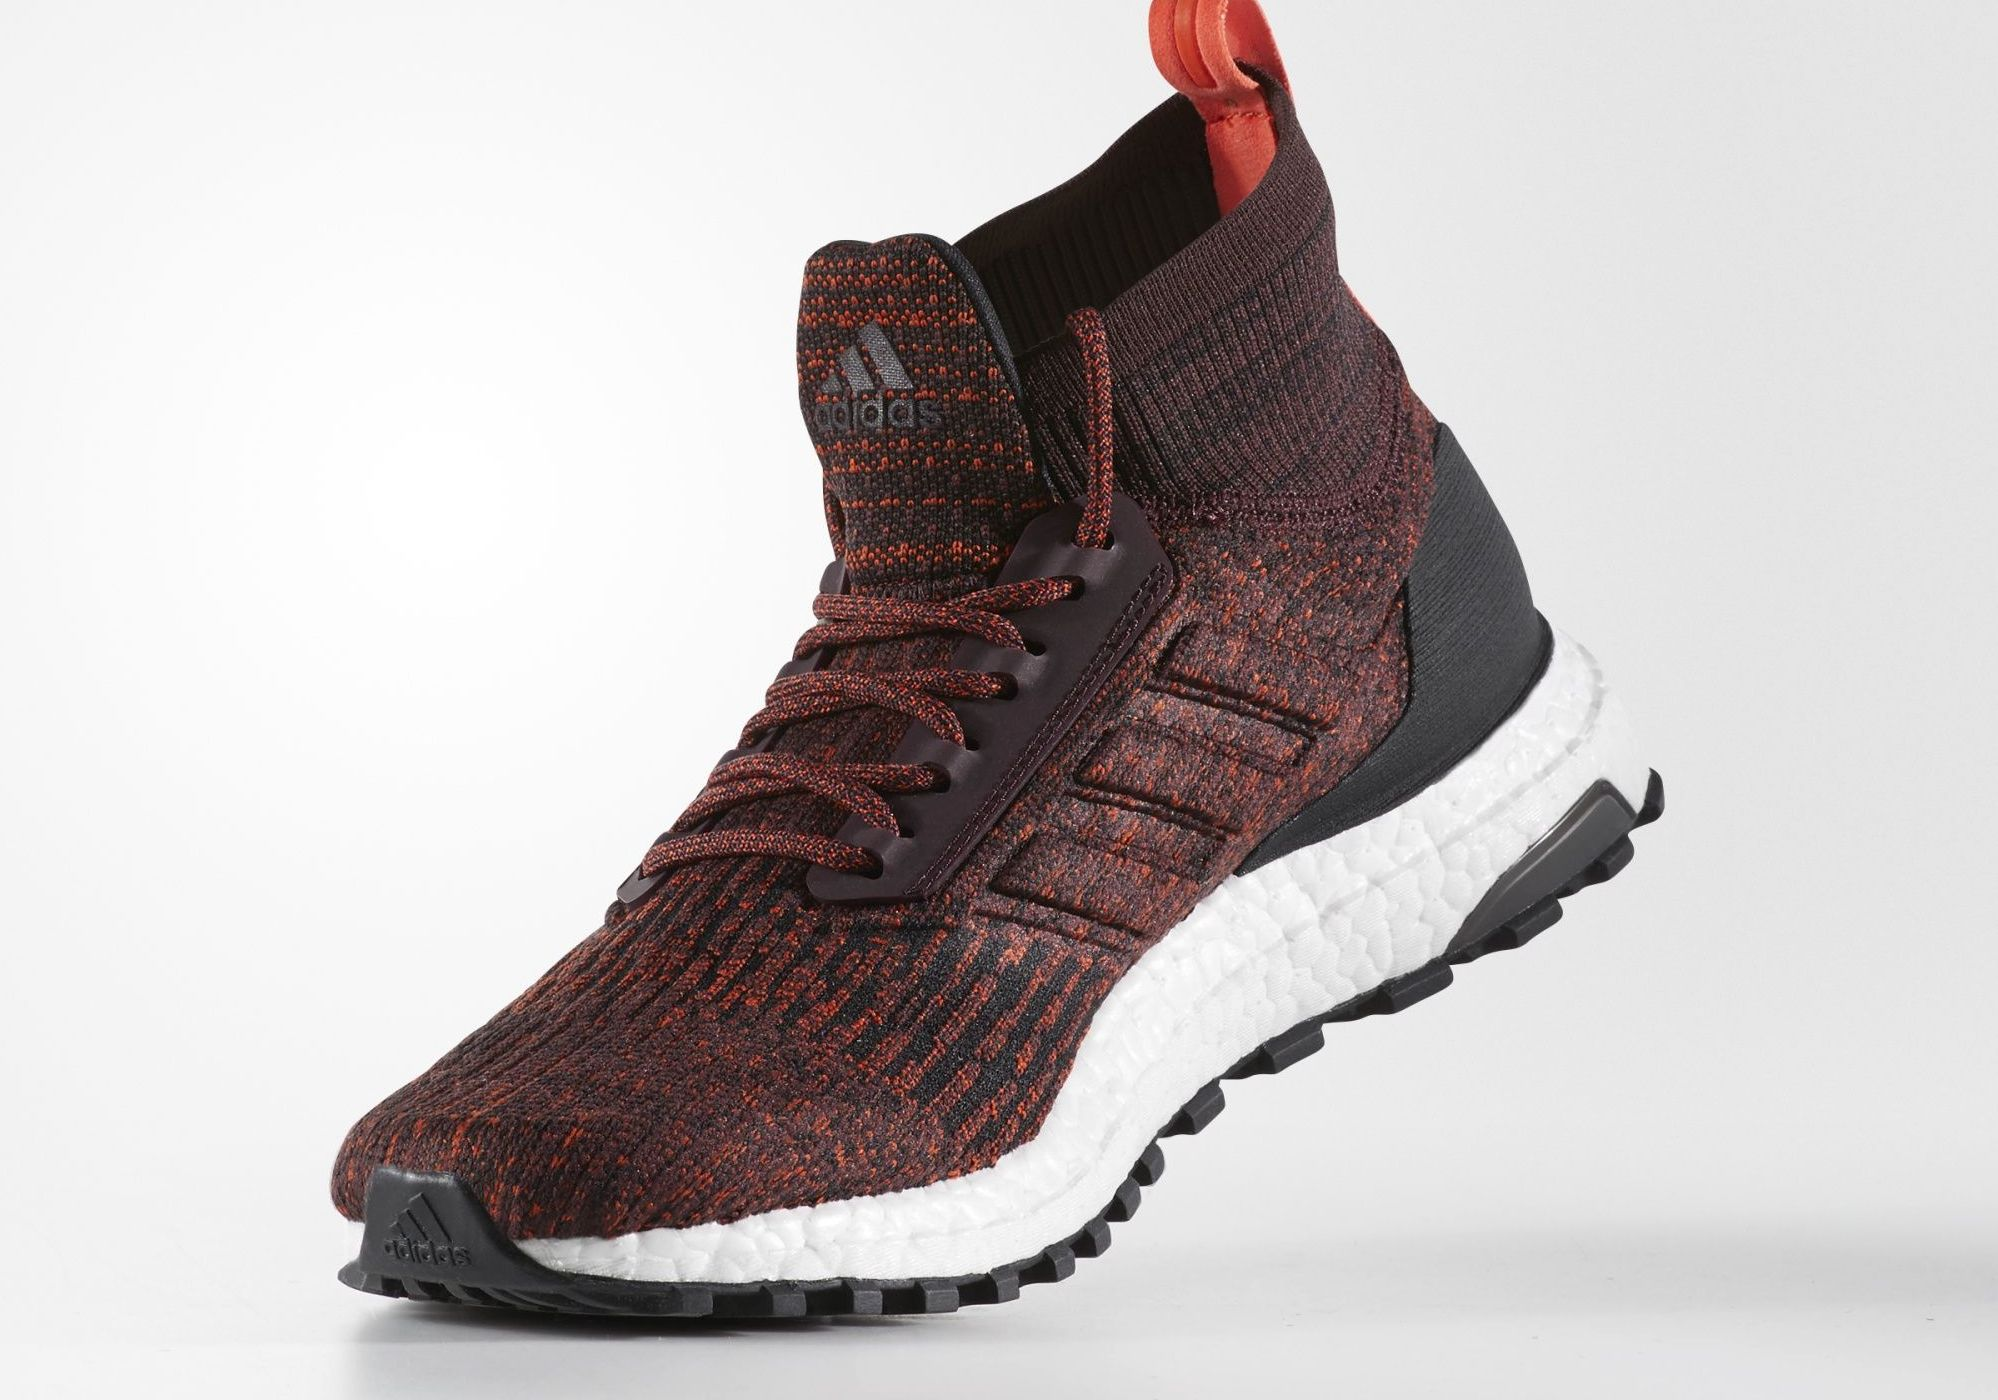 reputable site 82857 2ff3f The adidas UltraBoost ATR Mid is an Off-Road Upgrade ...